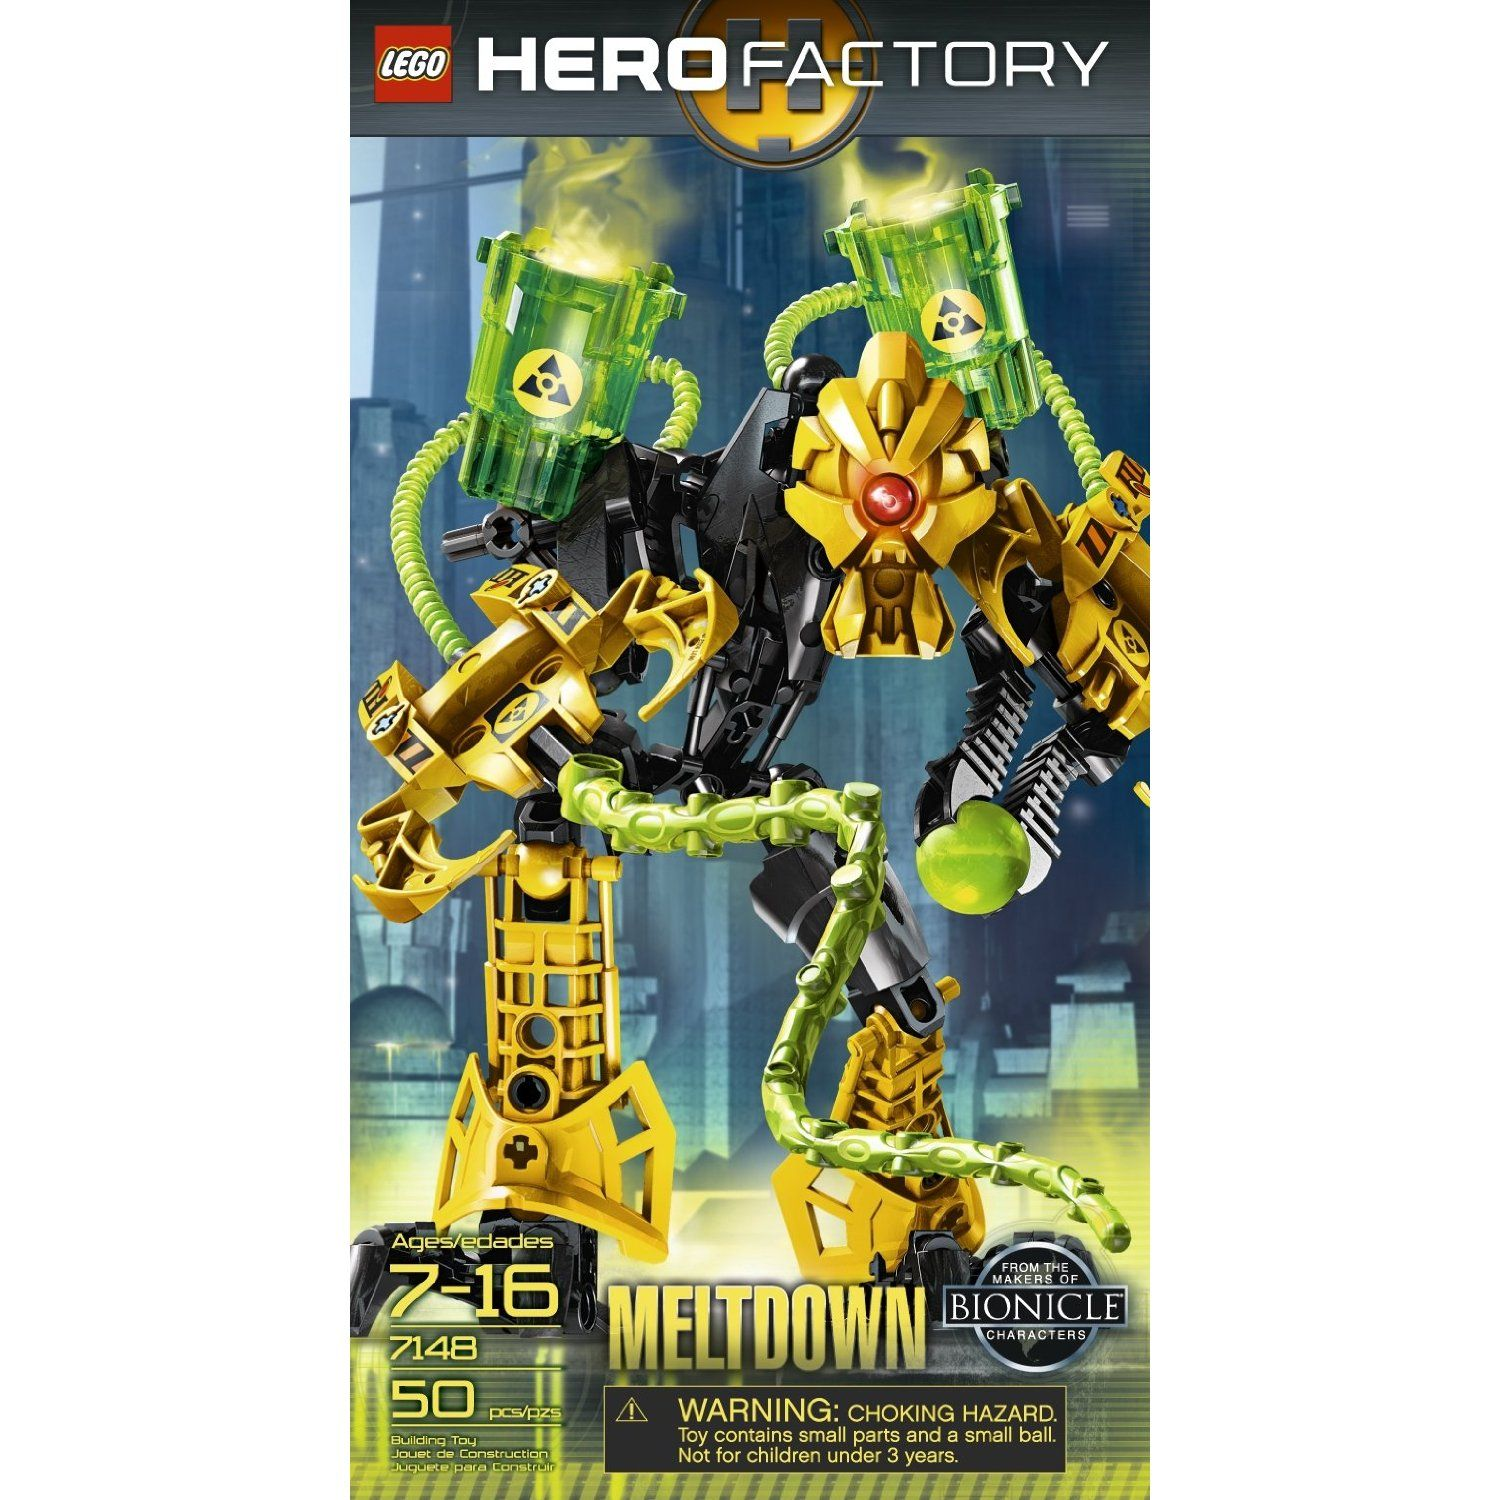 Hero Factory Jet Rocka Instructions Preston Pinterest Hero